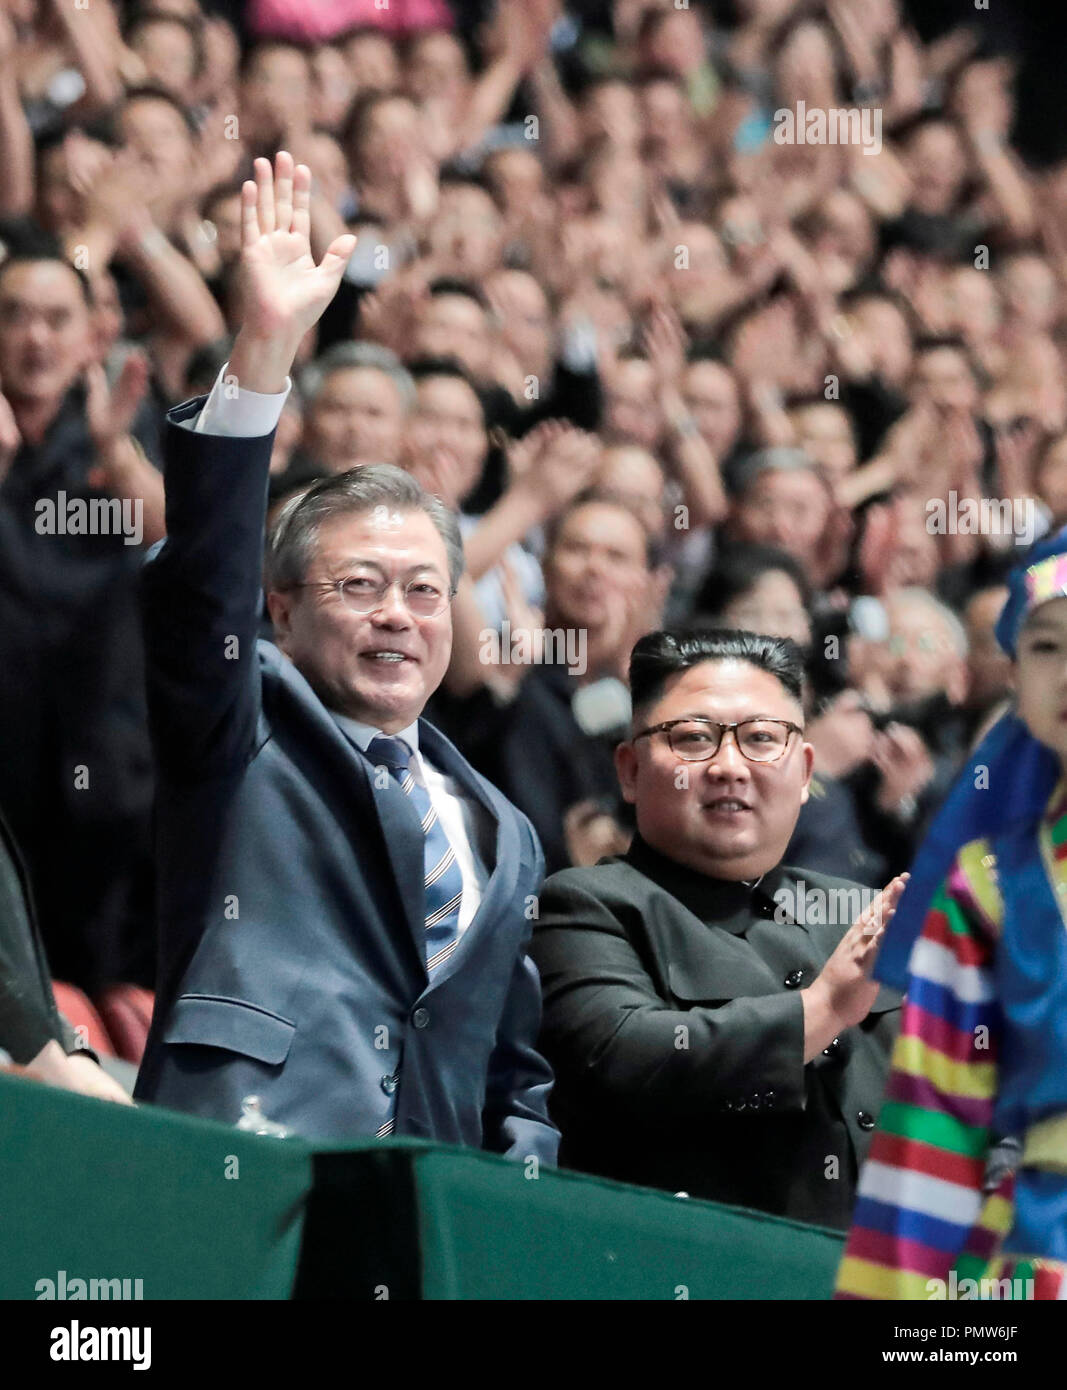 https://c8.alamy.com/comp/PMW6JF/inter-korean-summit-sep-19-2018-north-korean-leader-kim-jong-un-and-south-korean-president-moon-jae-in-along-with-their-wives-wave-to-north-koreans-cheering-before-watching-the-large-scale-gymnastic-and-artistic-show-titled-the-glorious-country-at-the-may-day-stadium-in-pyongyang-north-korea-editorial-use-only-credit-pyeongyang-press-corpspoolafloalamy-live-news-PMW6JF.jpg